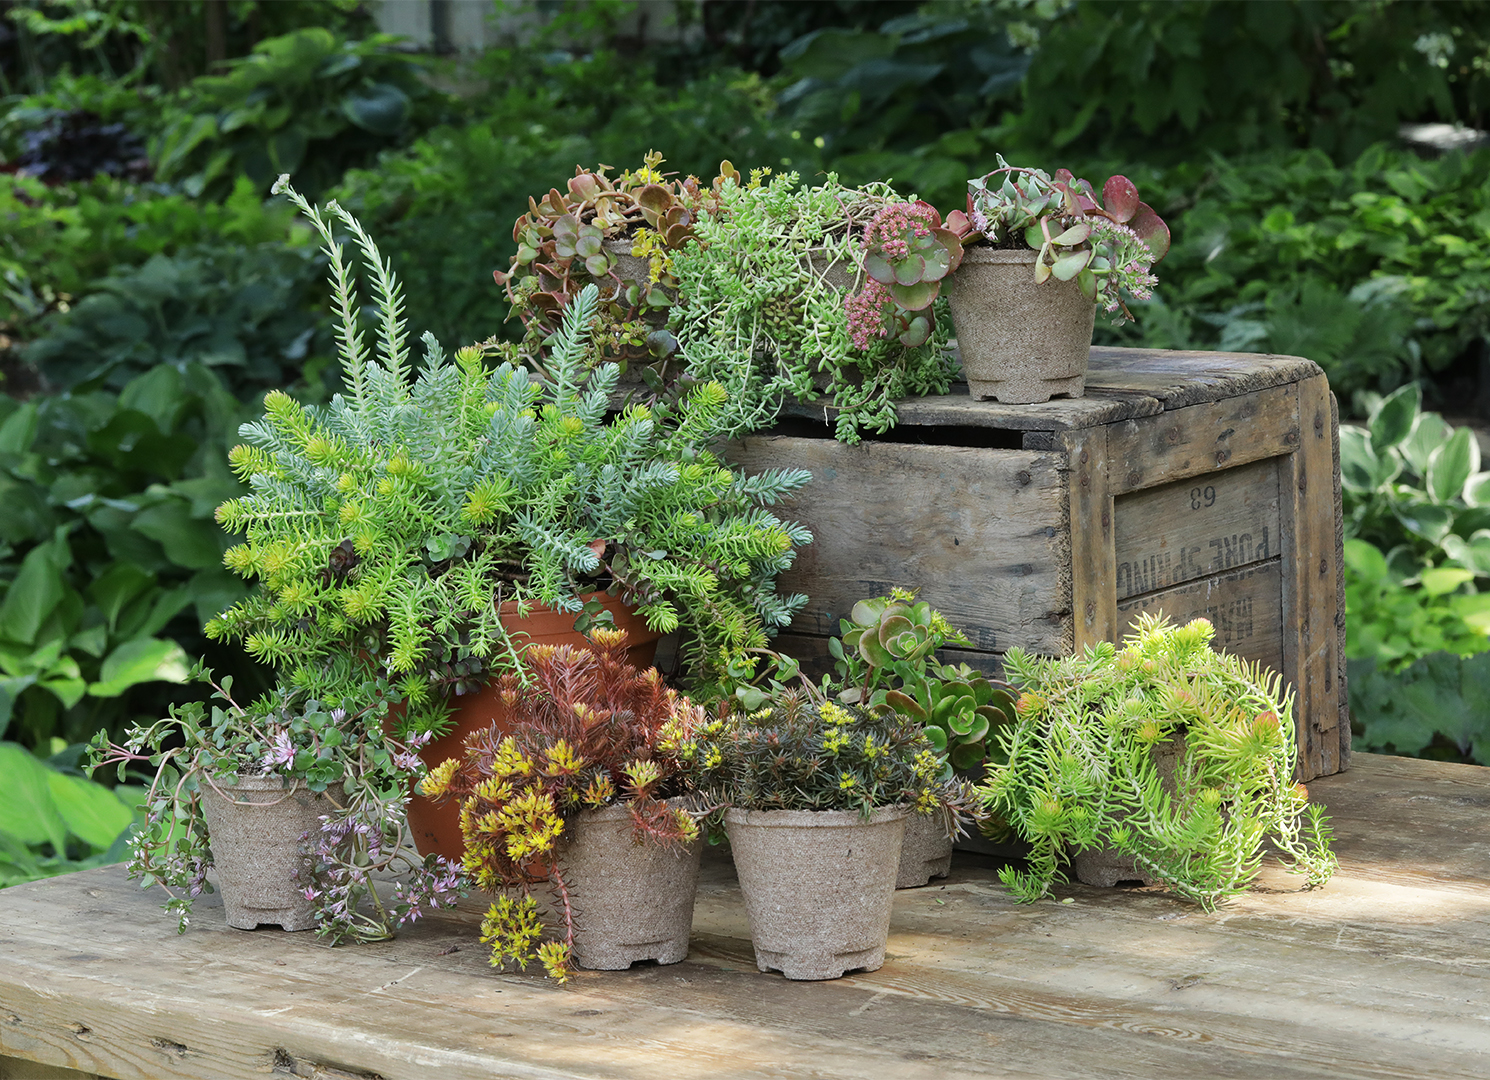 Sedum potted plants video still